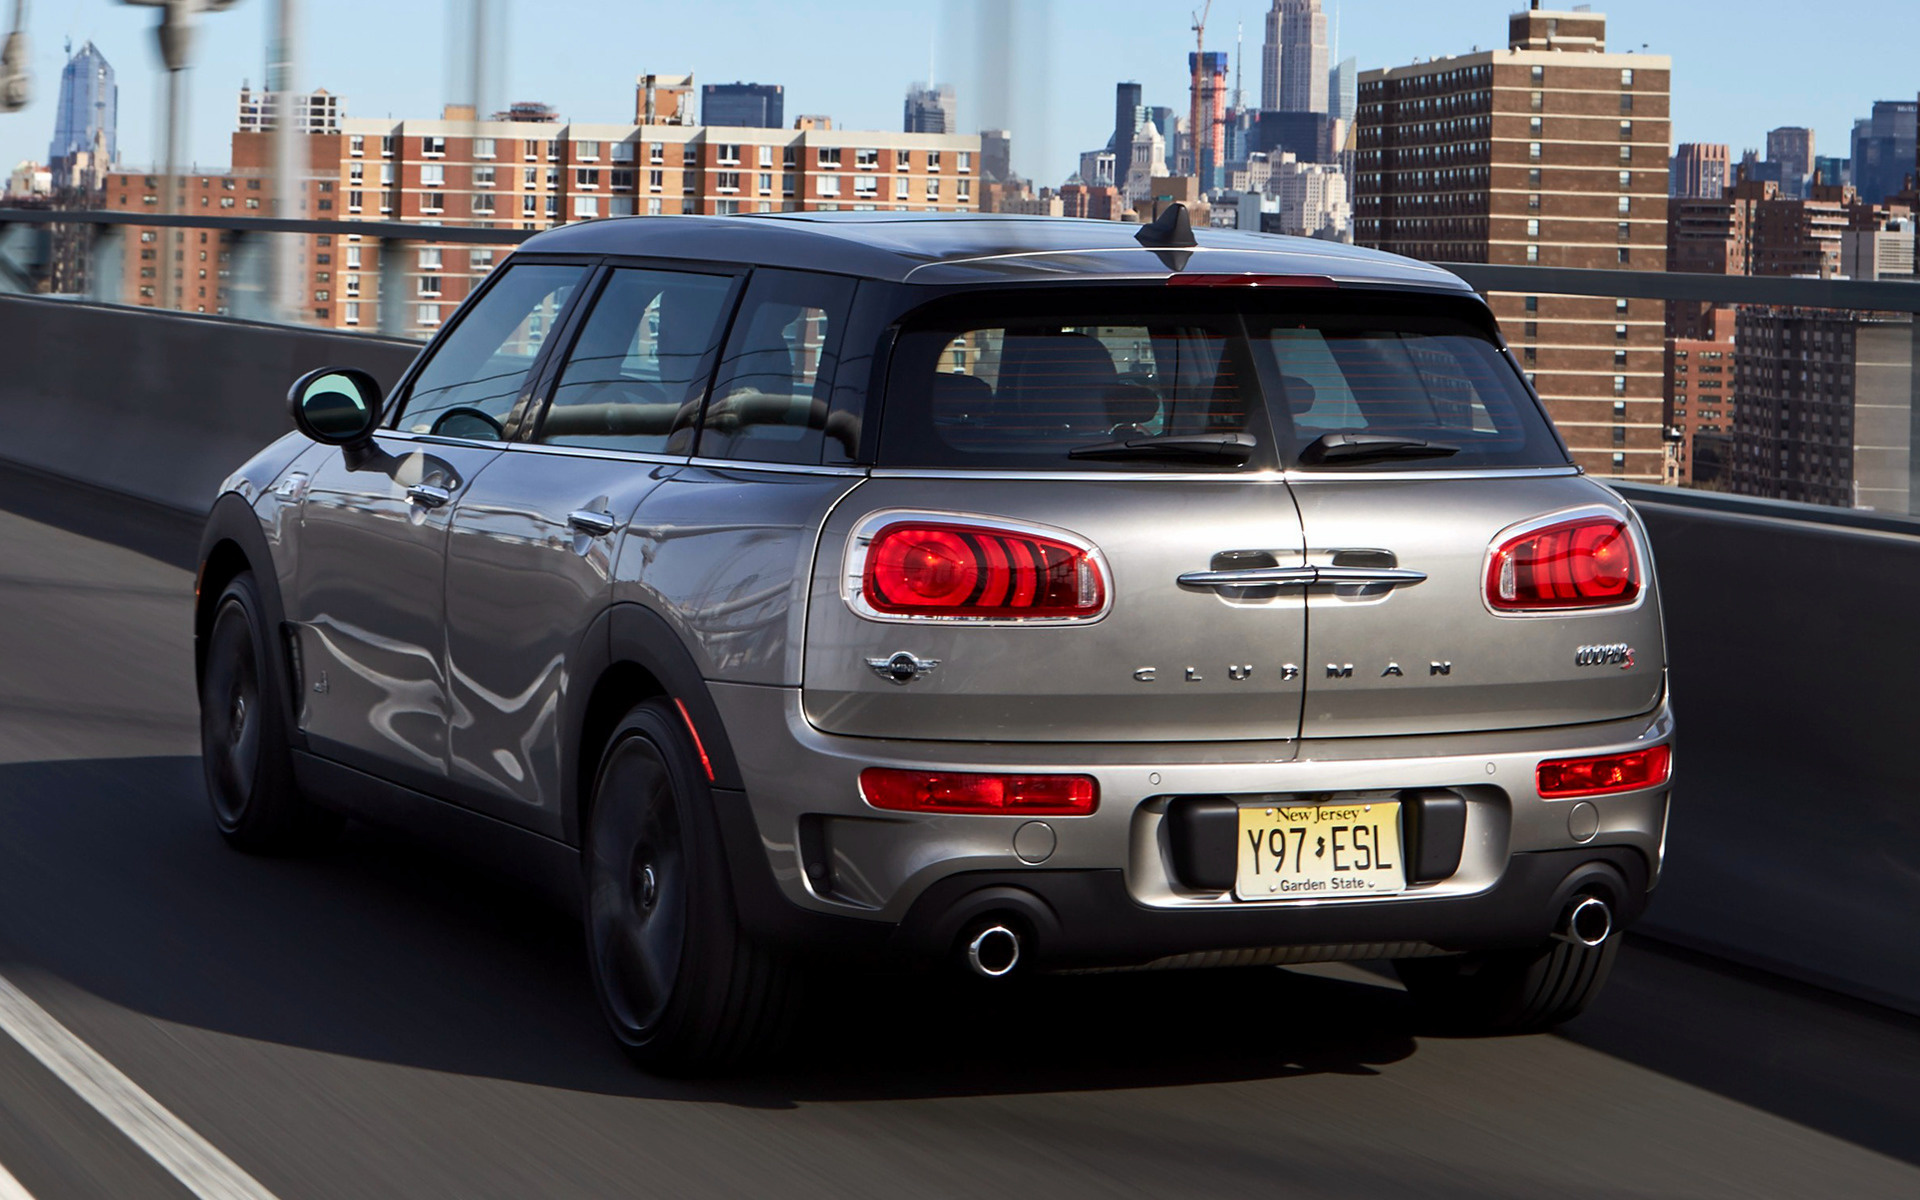 Toyota Scion 2017 >> Mini Cooper S Clubman (2017) US Wallpapers and HD Images - Car Pixel